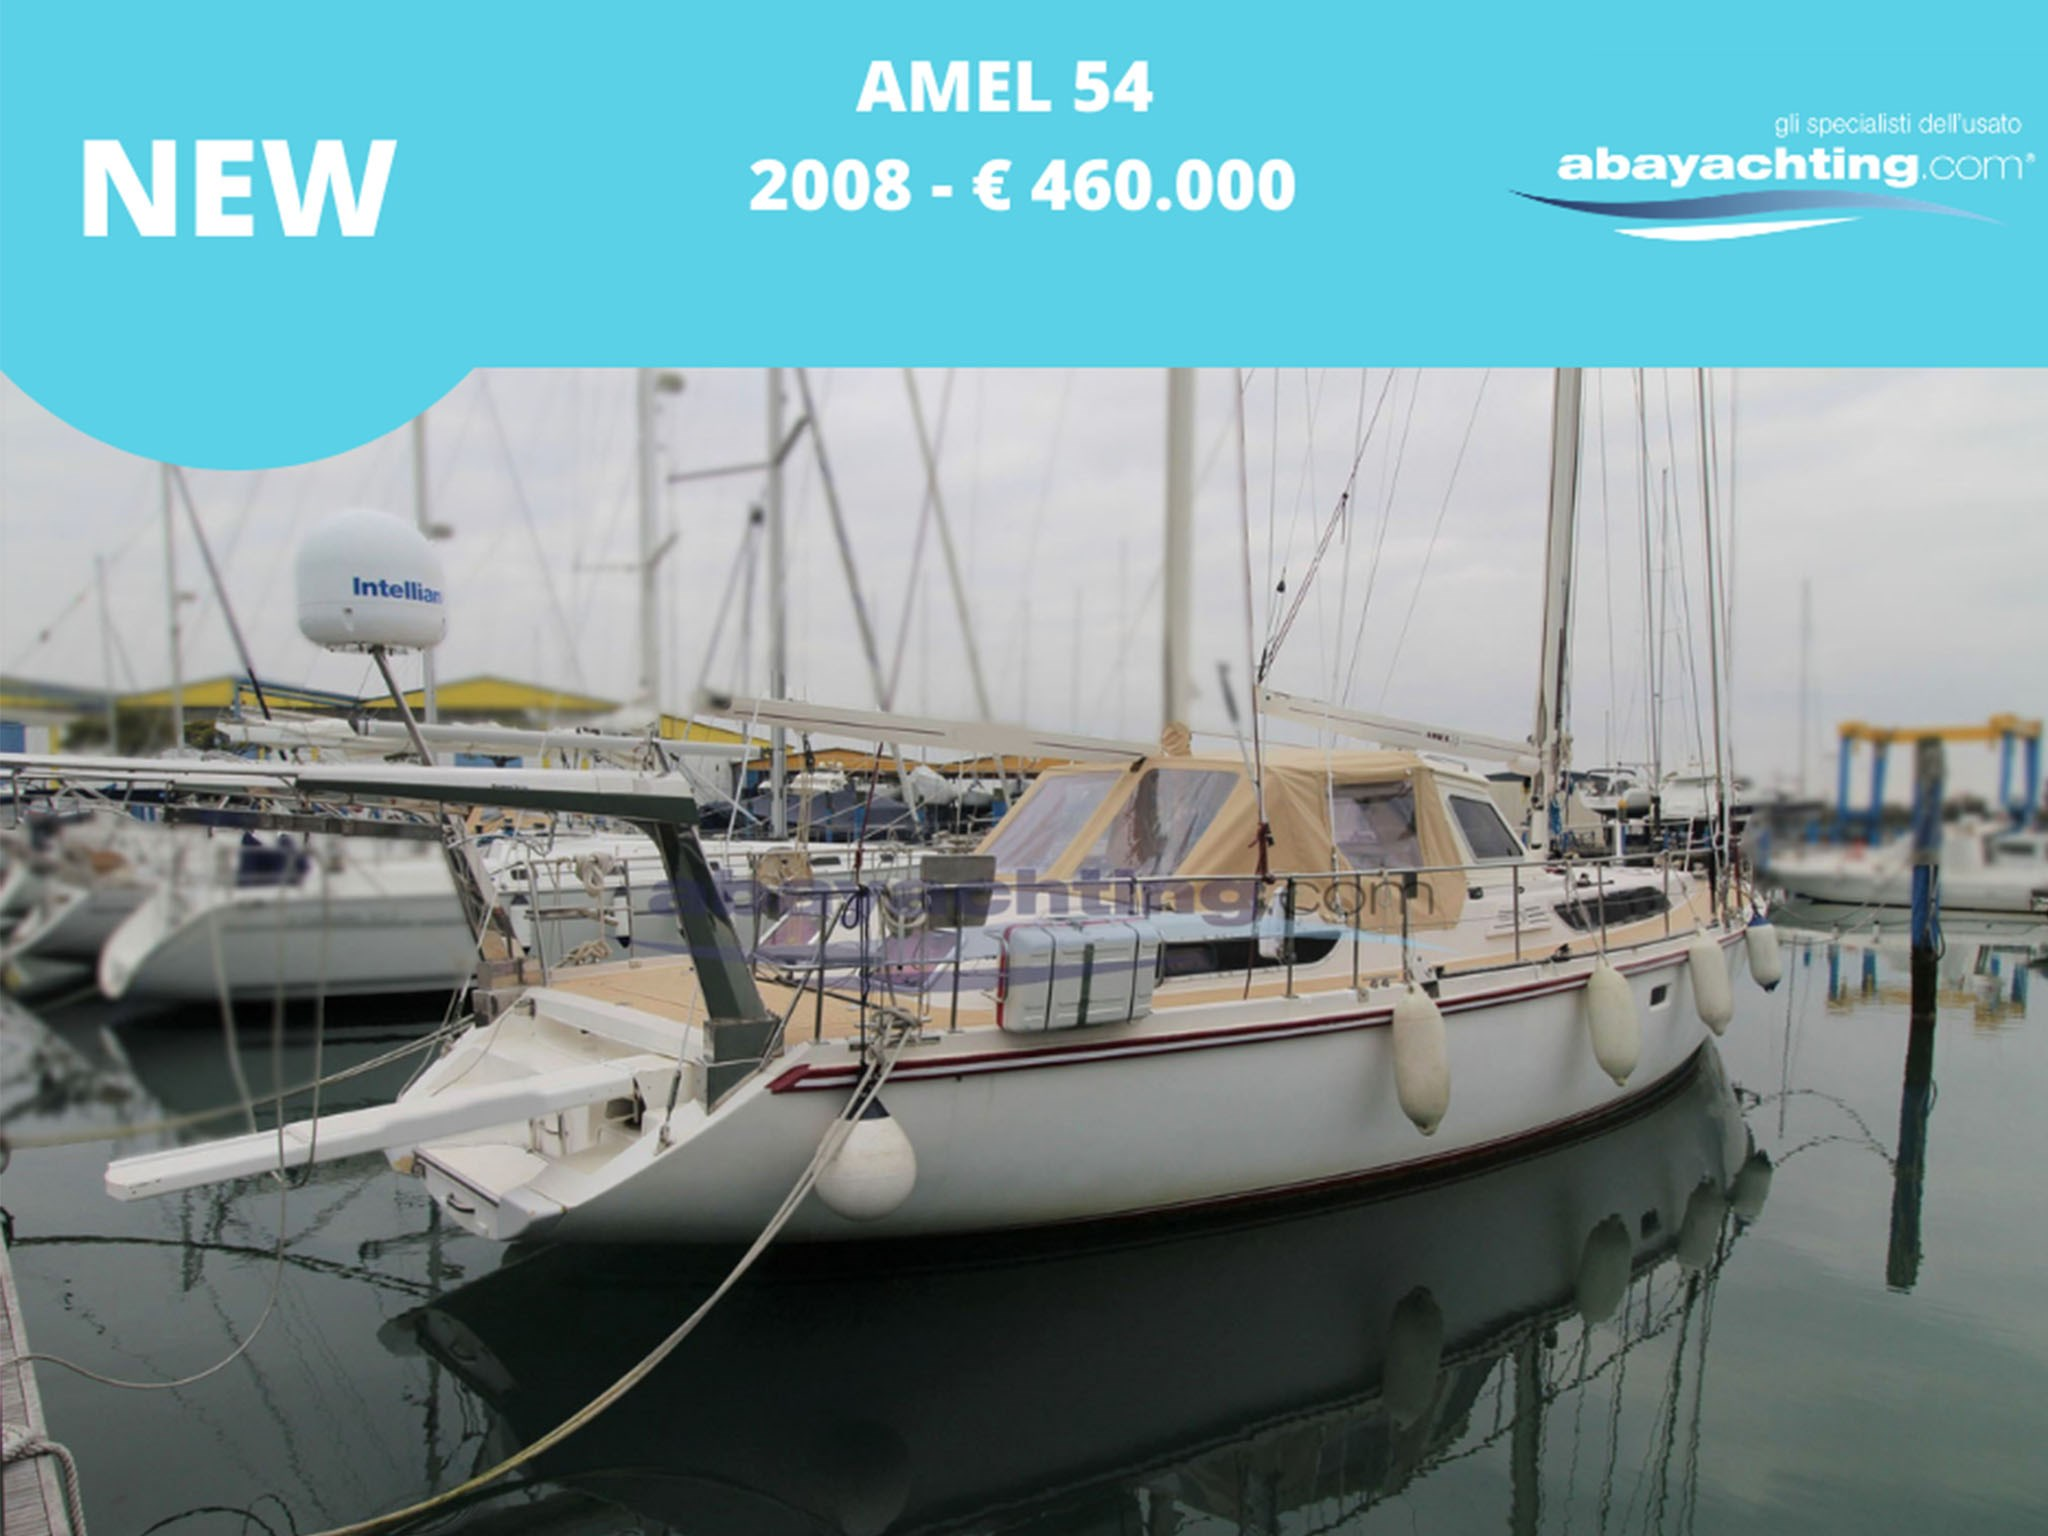 New arrival Amel 54 year 2008